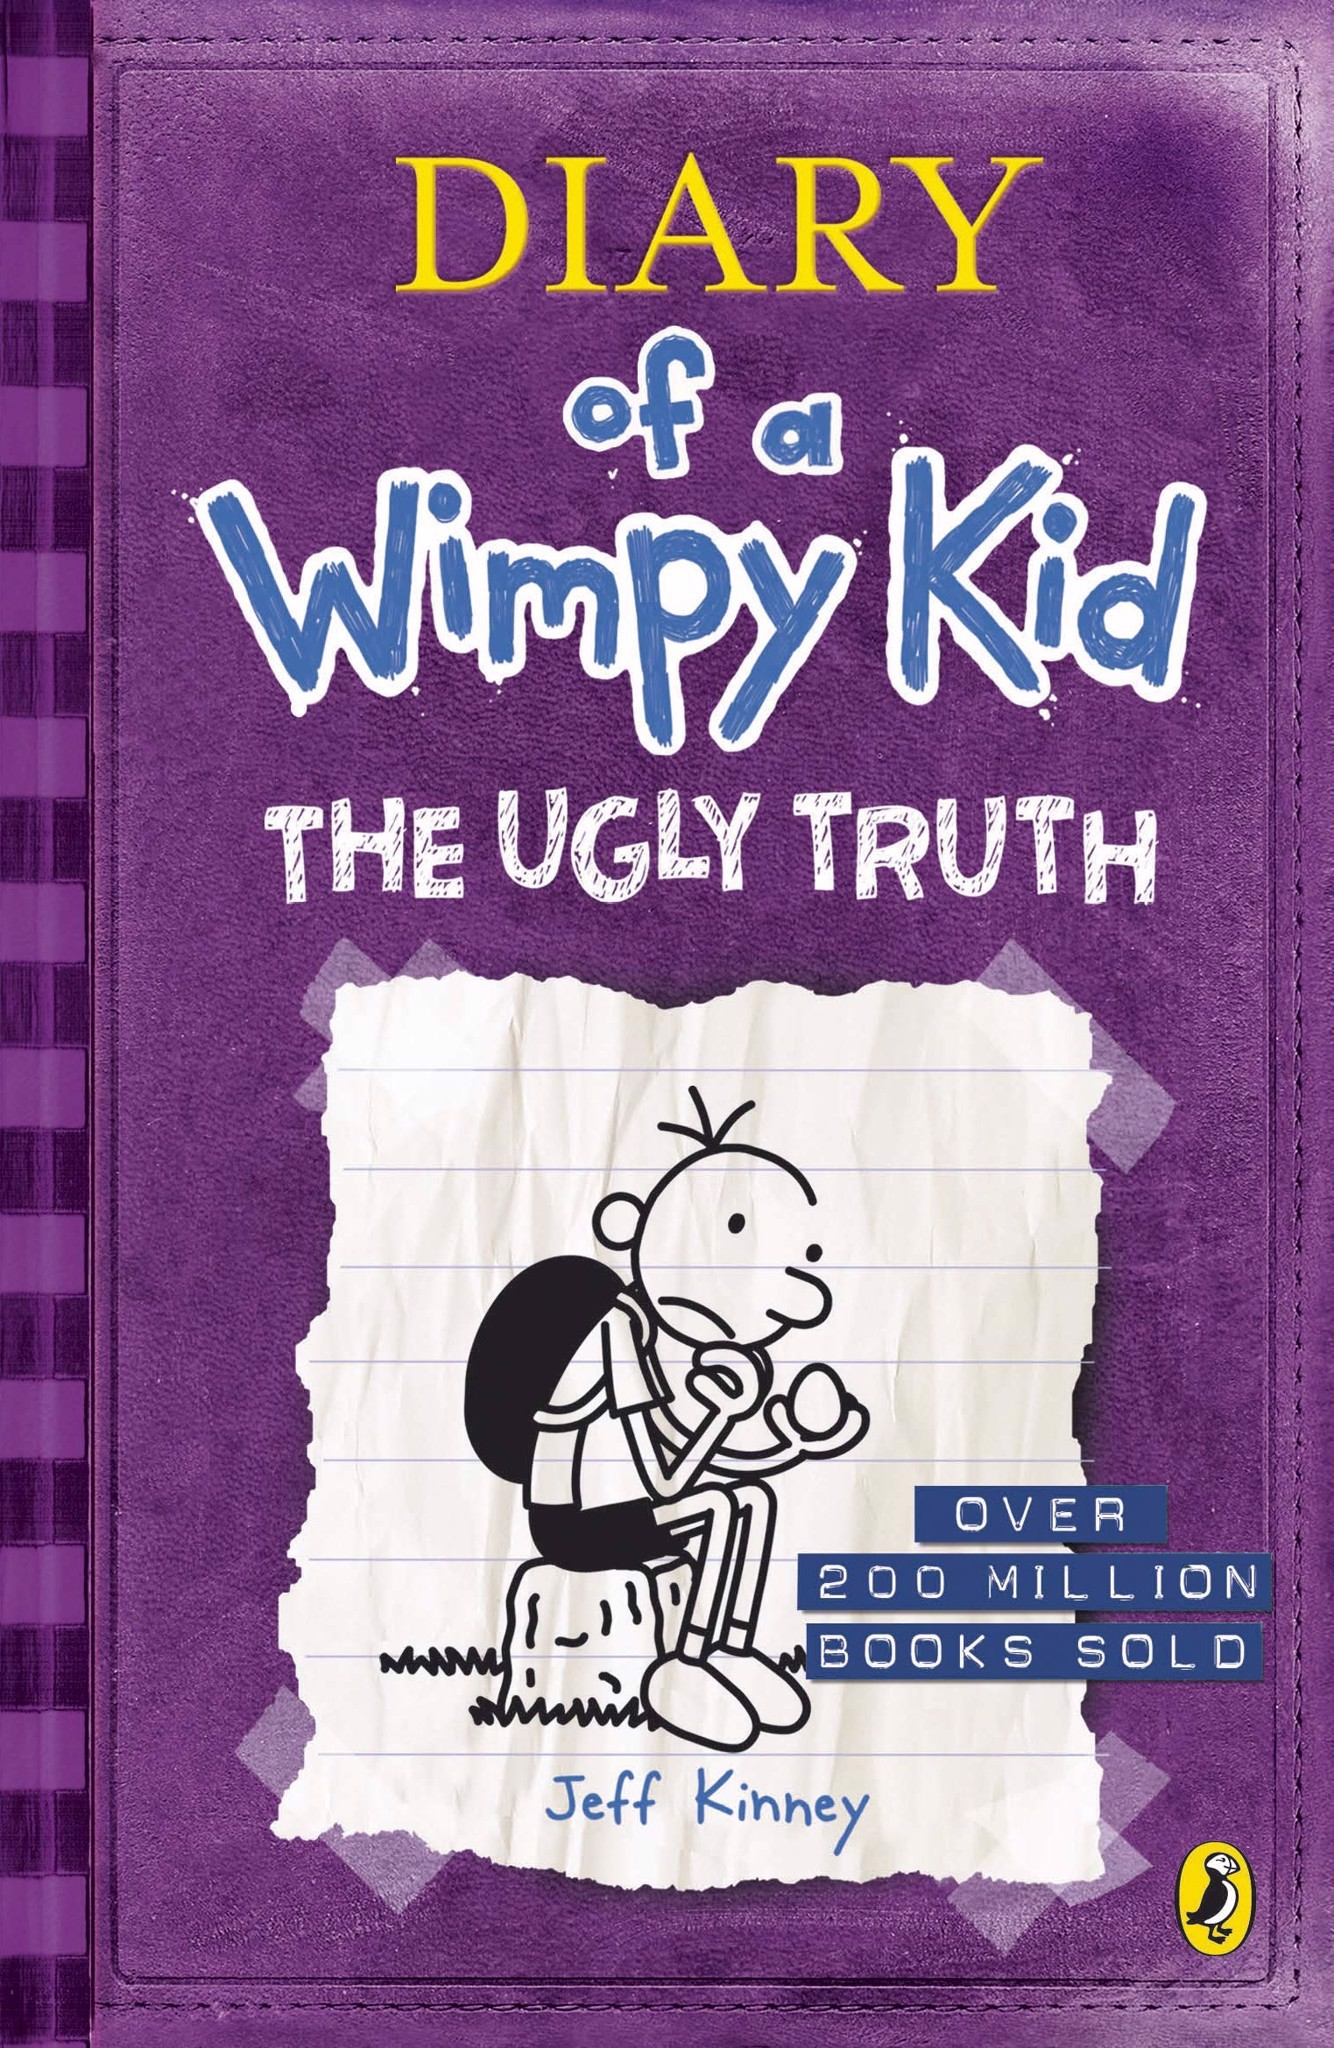 Diary of a Wimpy Kid 5: The Ugly Truth